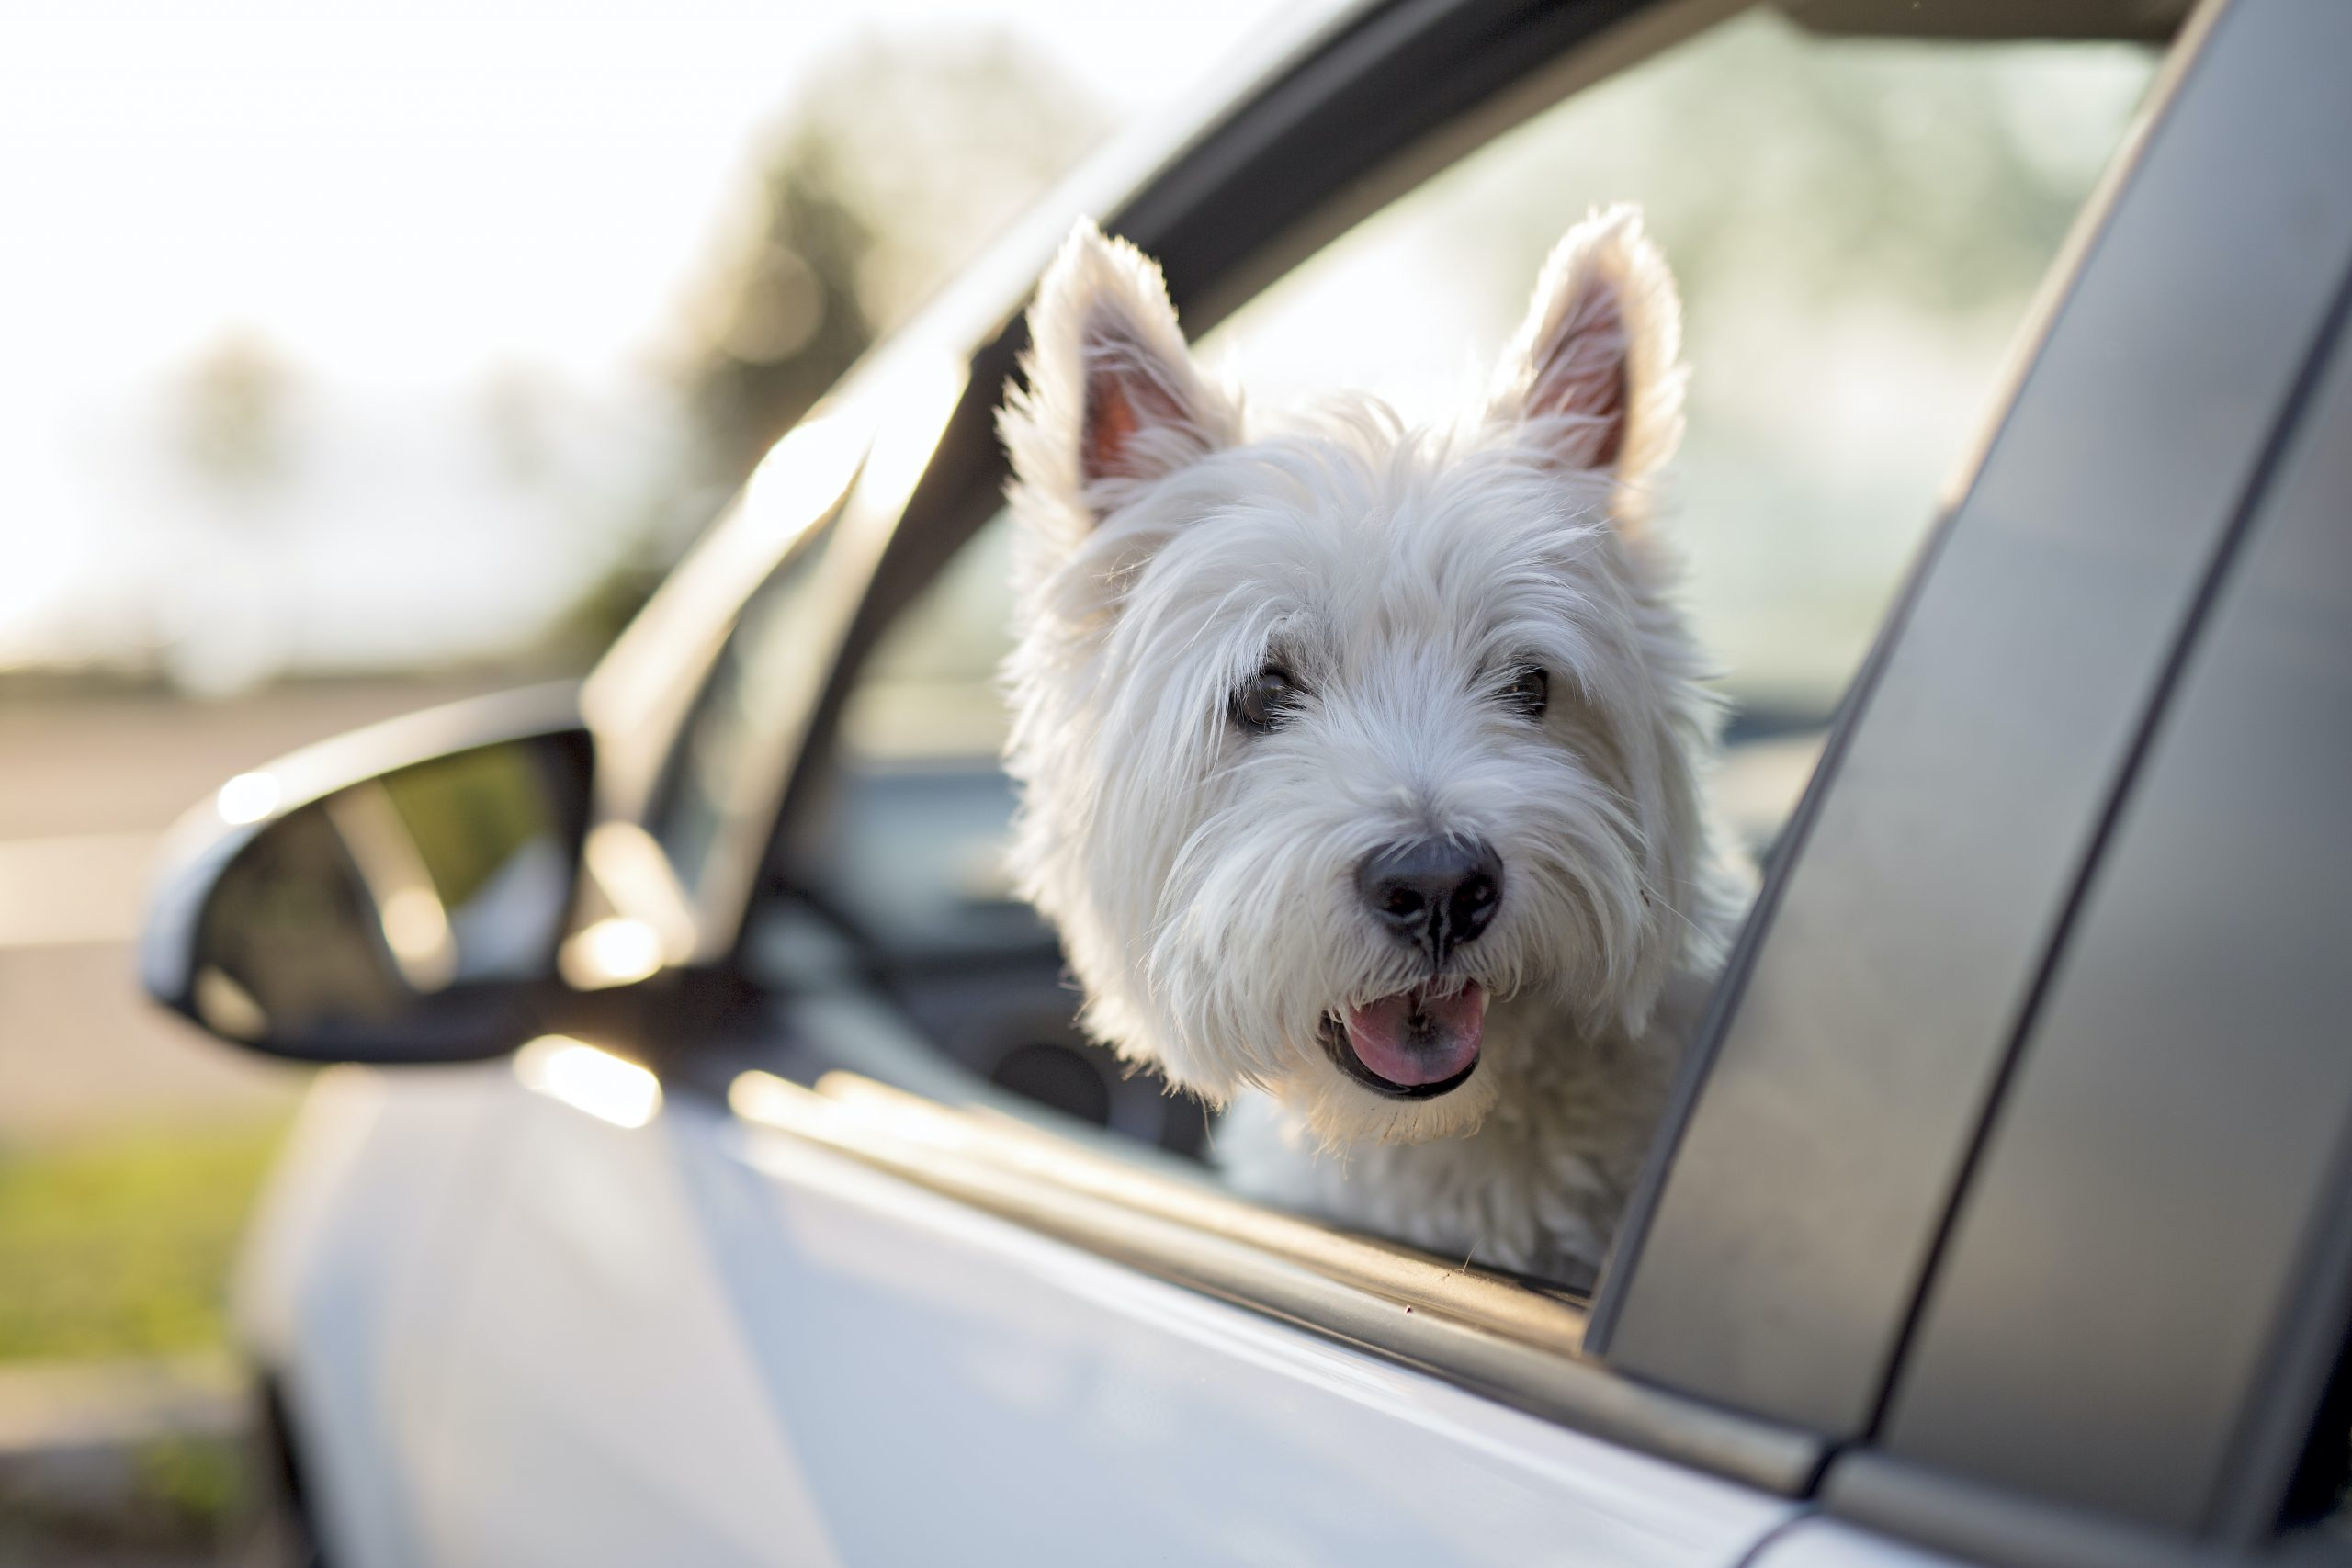 POWER PUPS: Keep your dog safe with these pet accessories